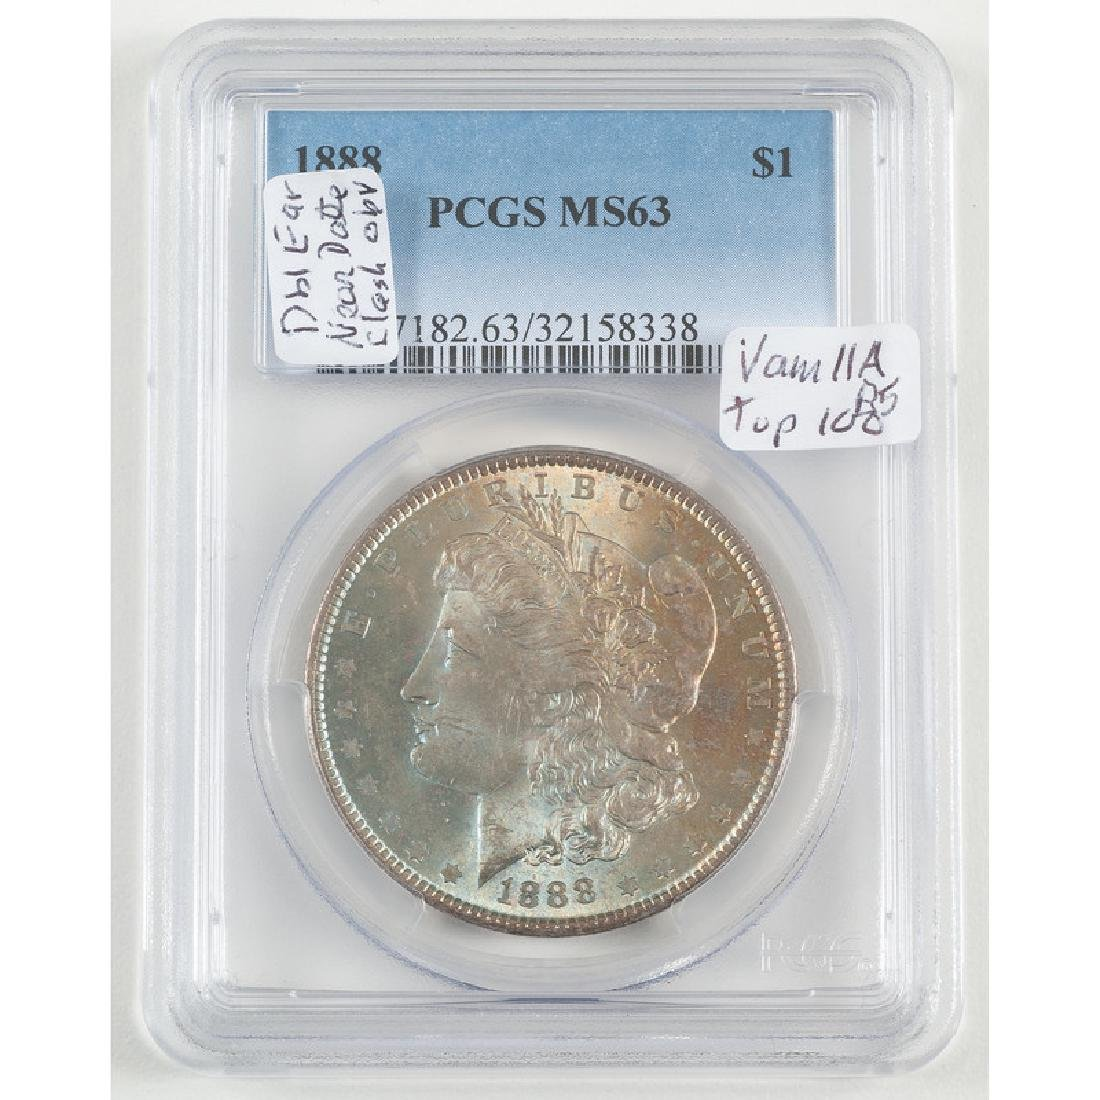 United States Morgan Silver Dollar 1888, PCGS MS63